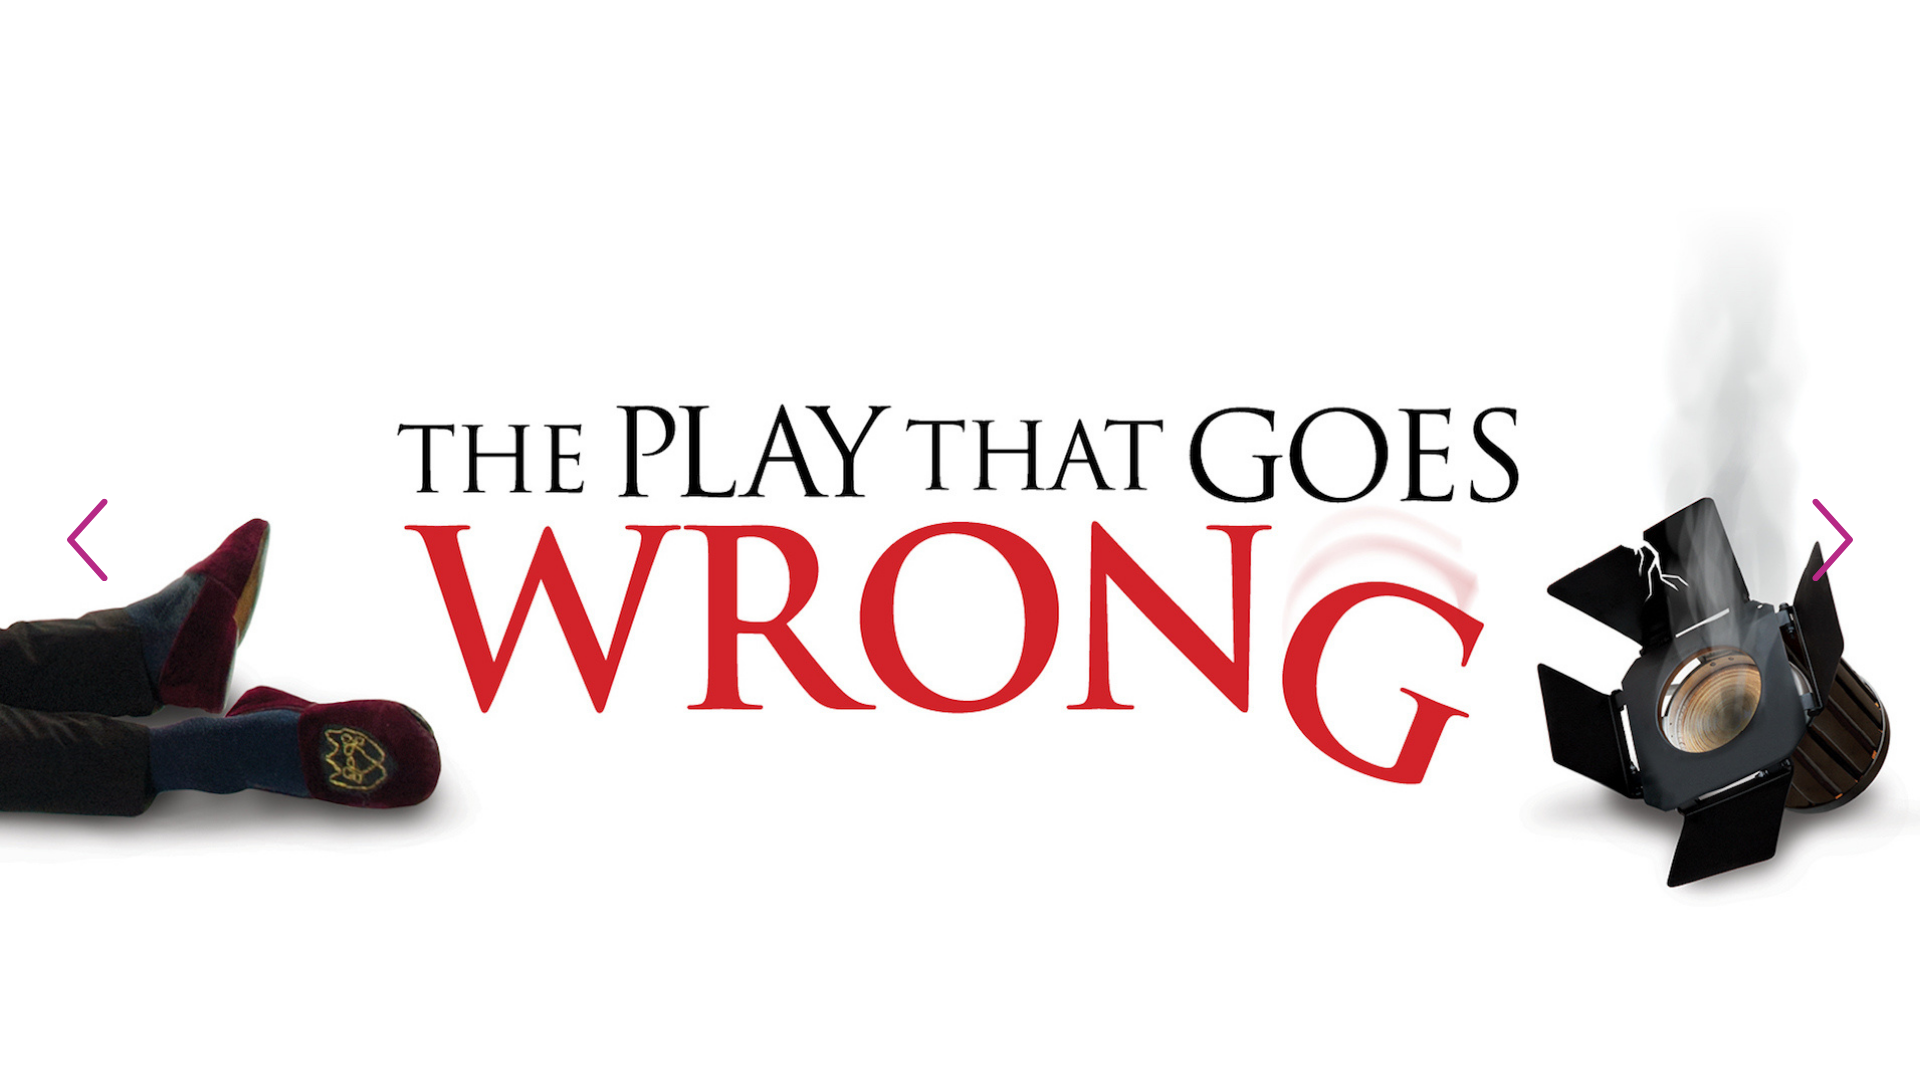 The Play That Goes Wrong title treatement. On one side of the titles is a broken theatre light, on the other, the legs and feet of a man who has clearly fallen over